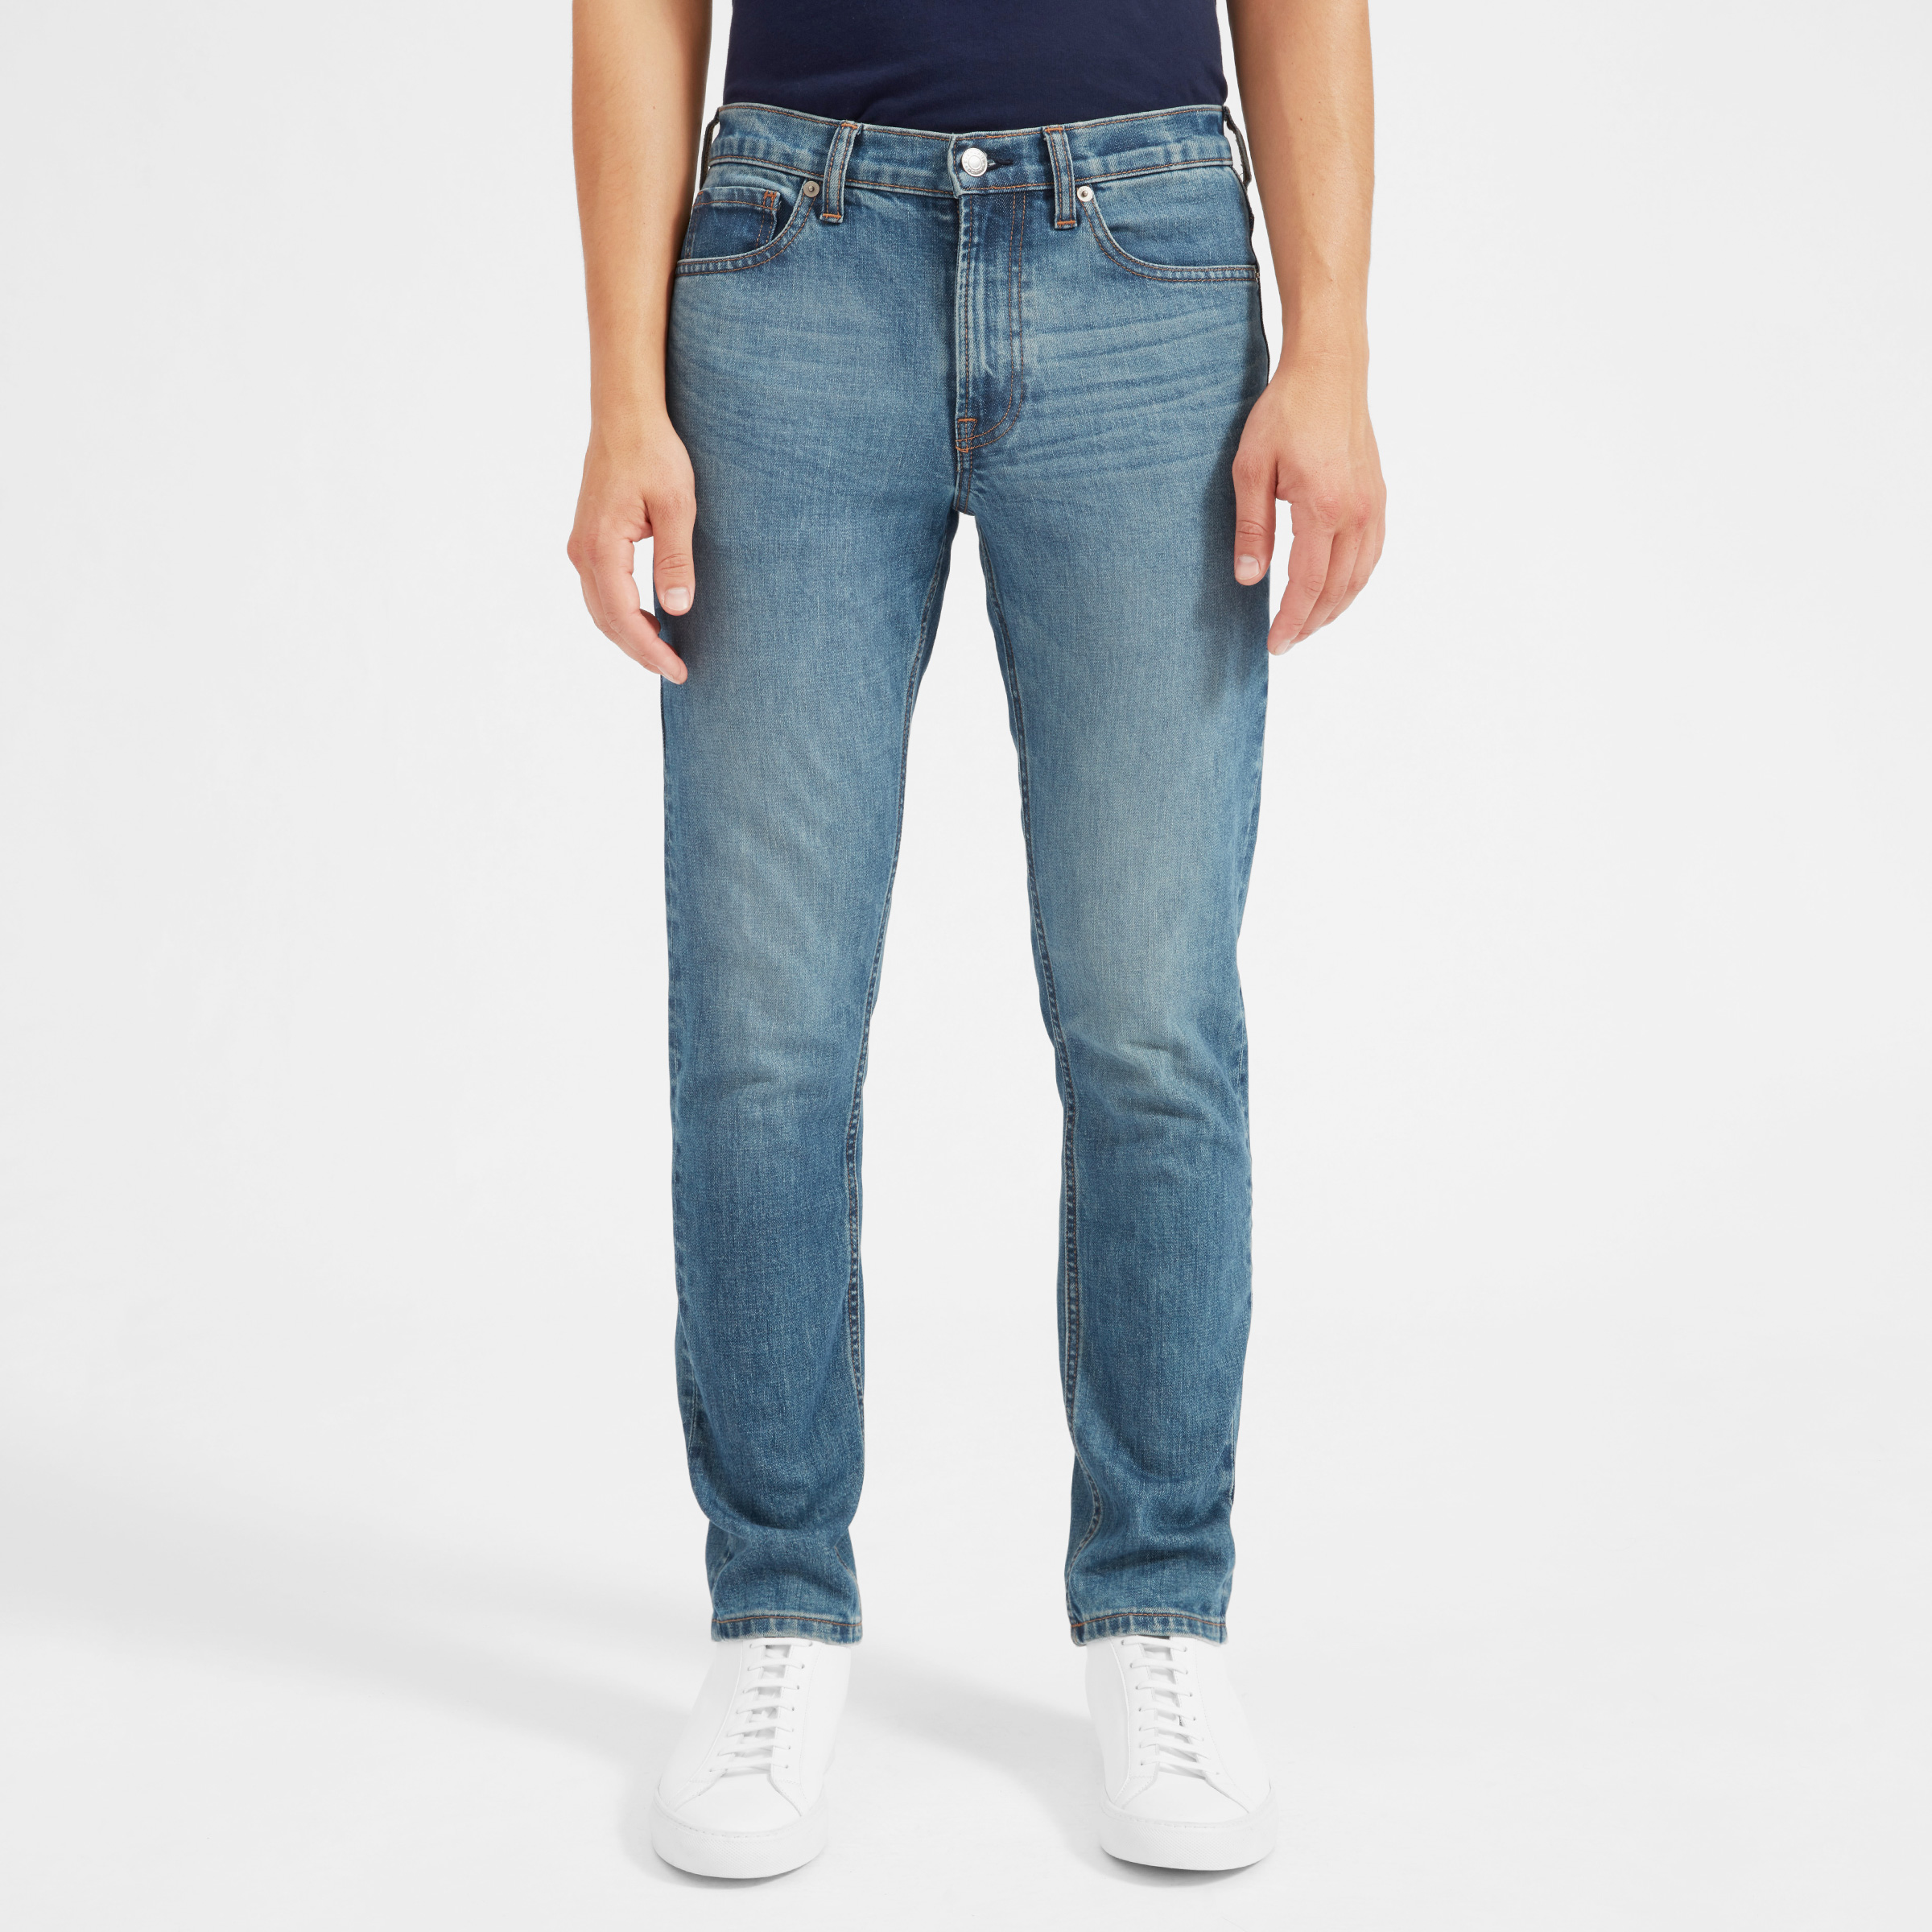 slim fit jeans the slim fit jean - everlane gmpplvk